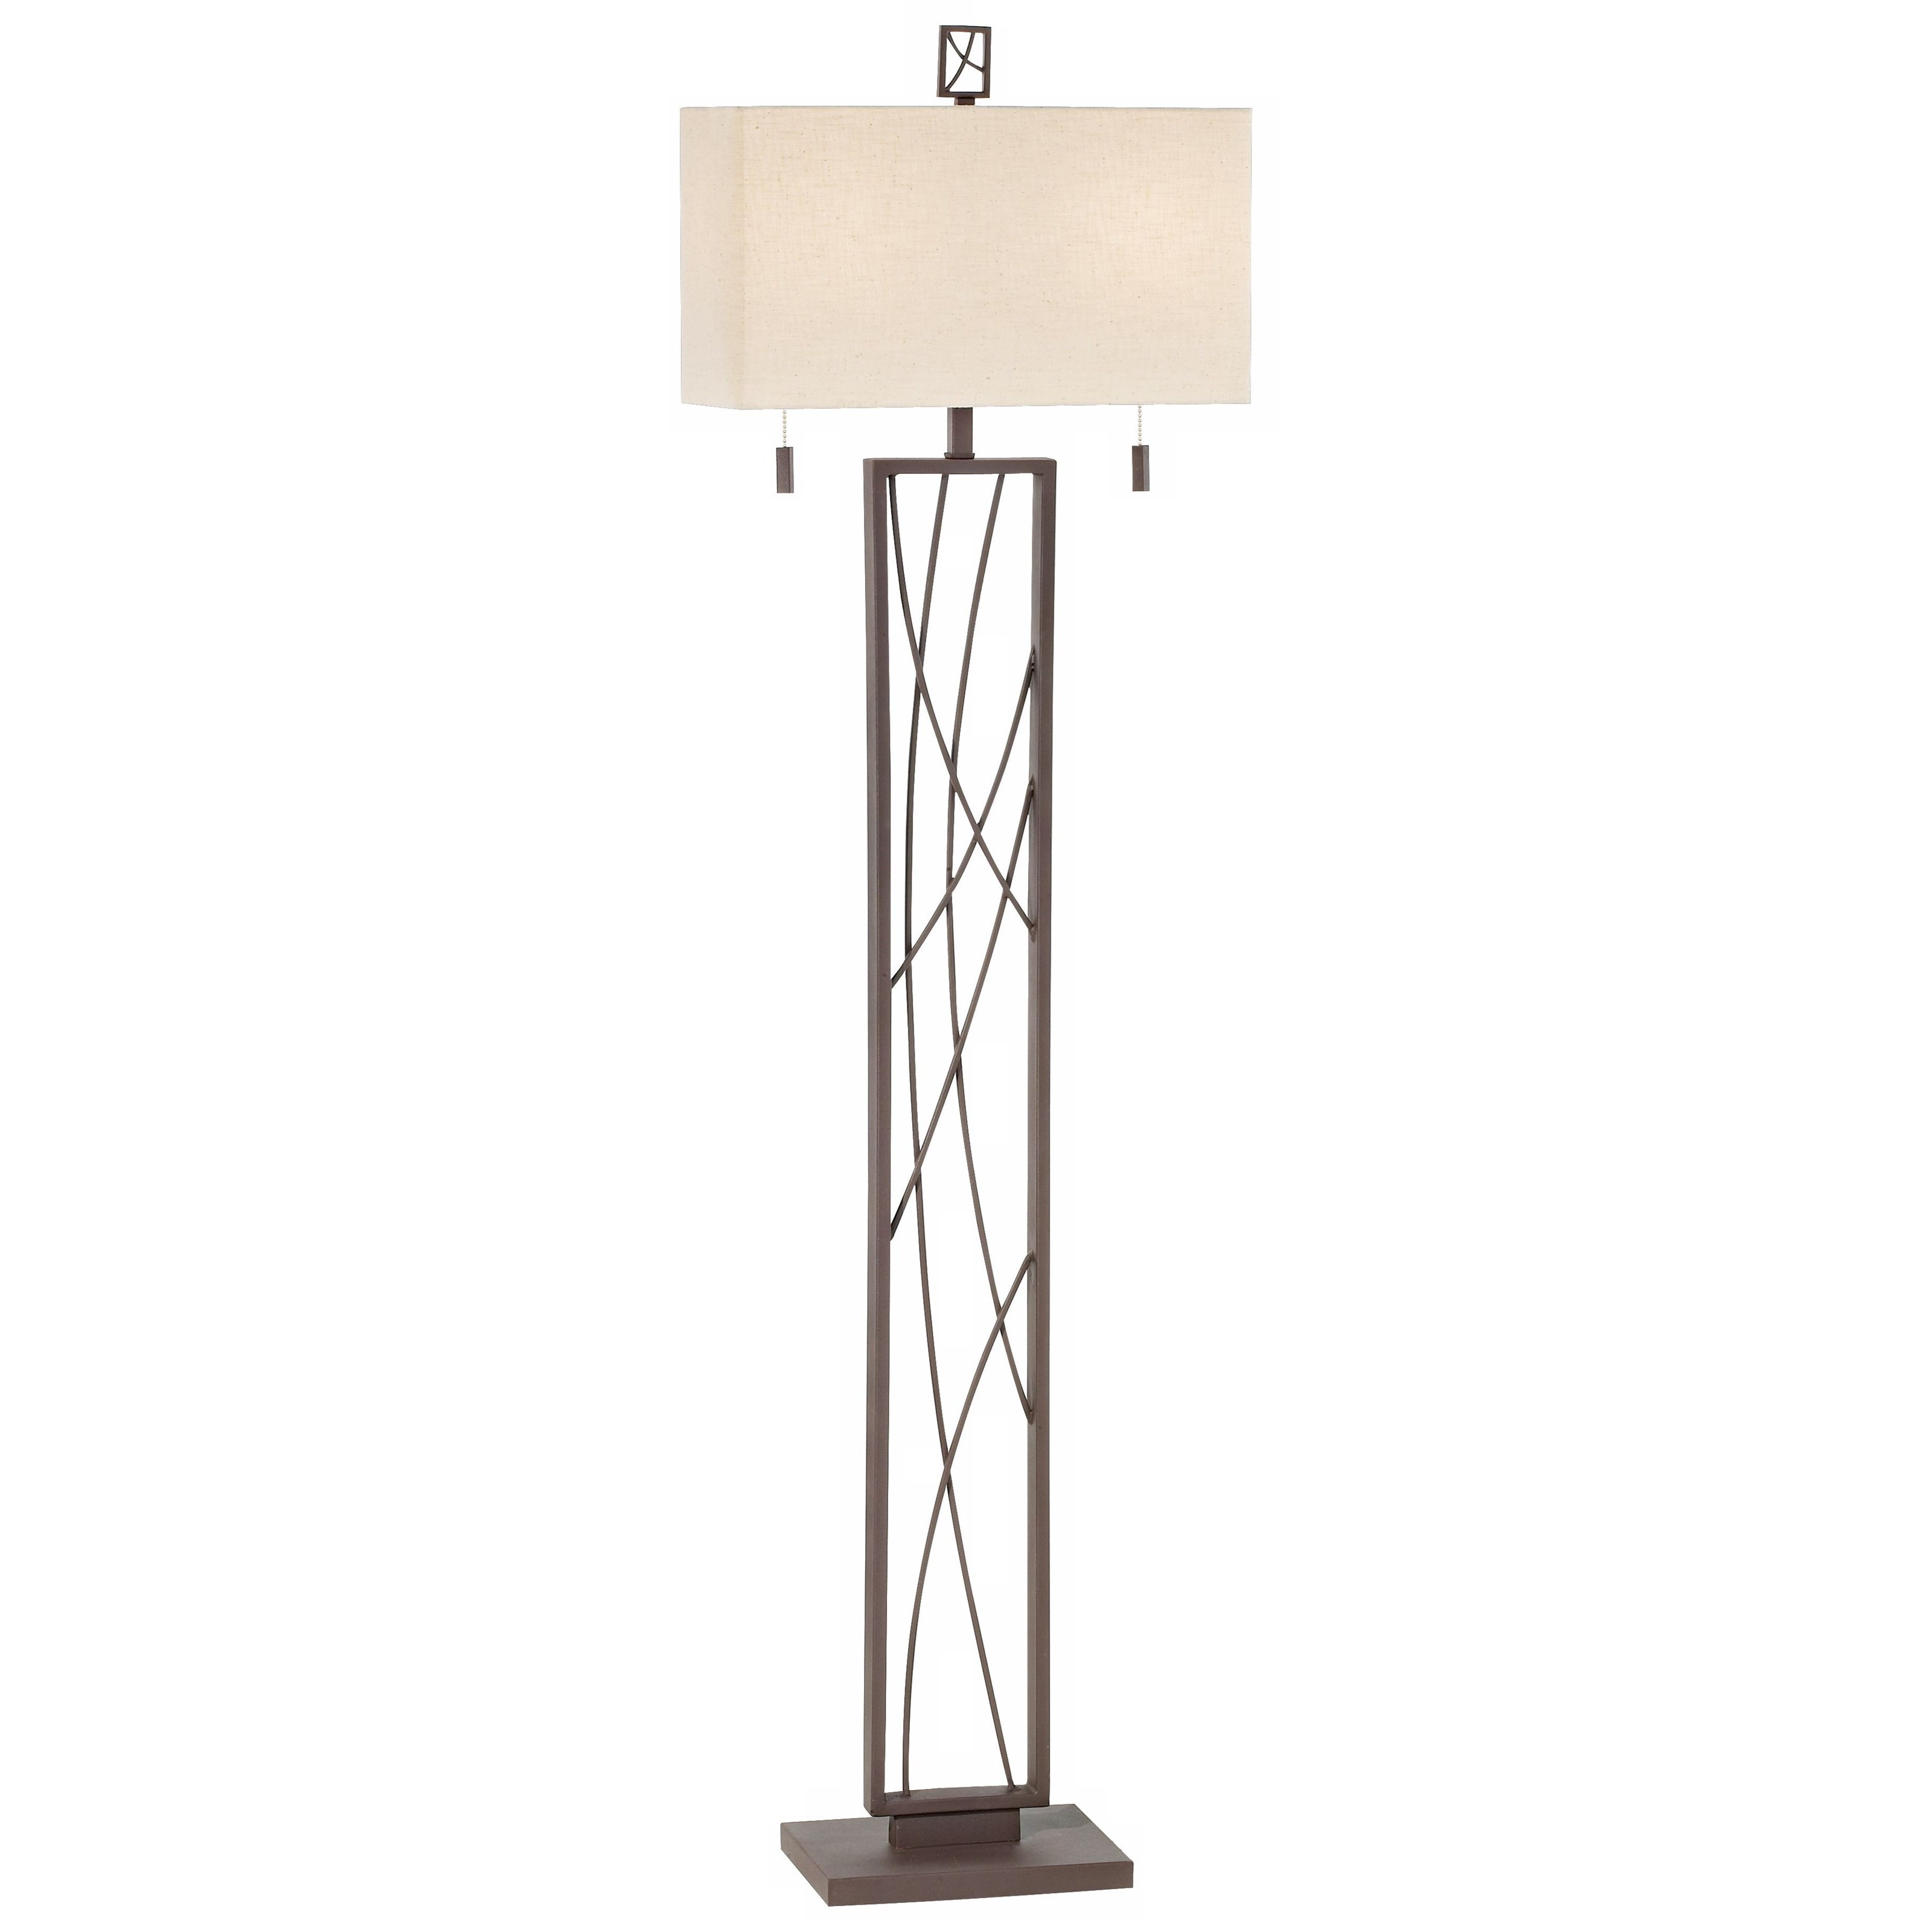 PCL FLOOR LAMPS Crossroads Floor Lamp by PCL LIGHTING at Walker's Furniture